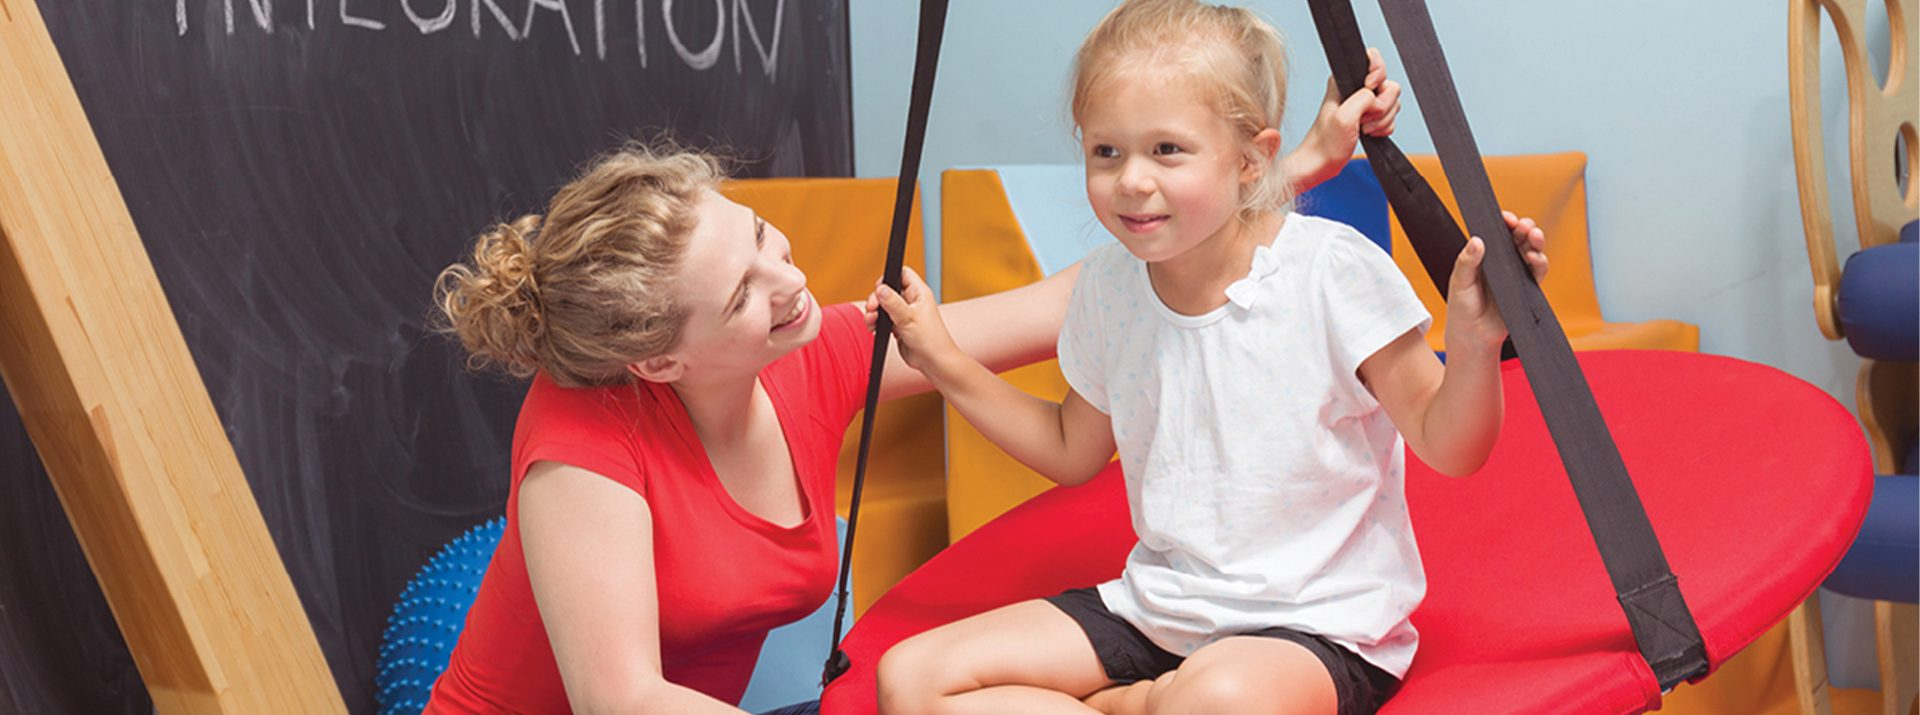 We are a unique pediatric therapy clinic